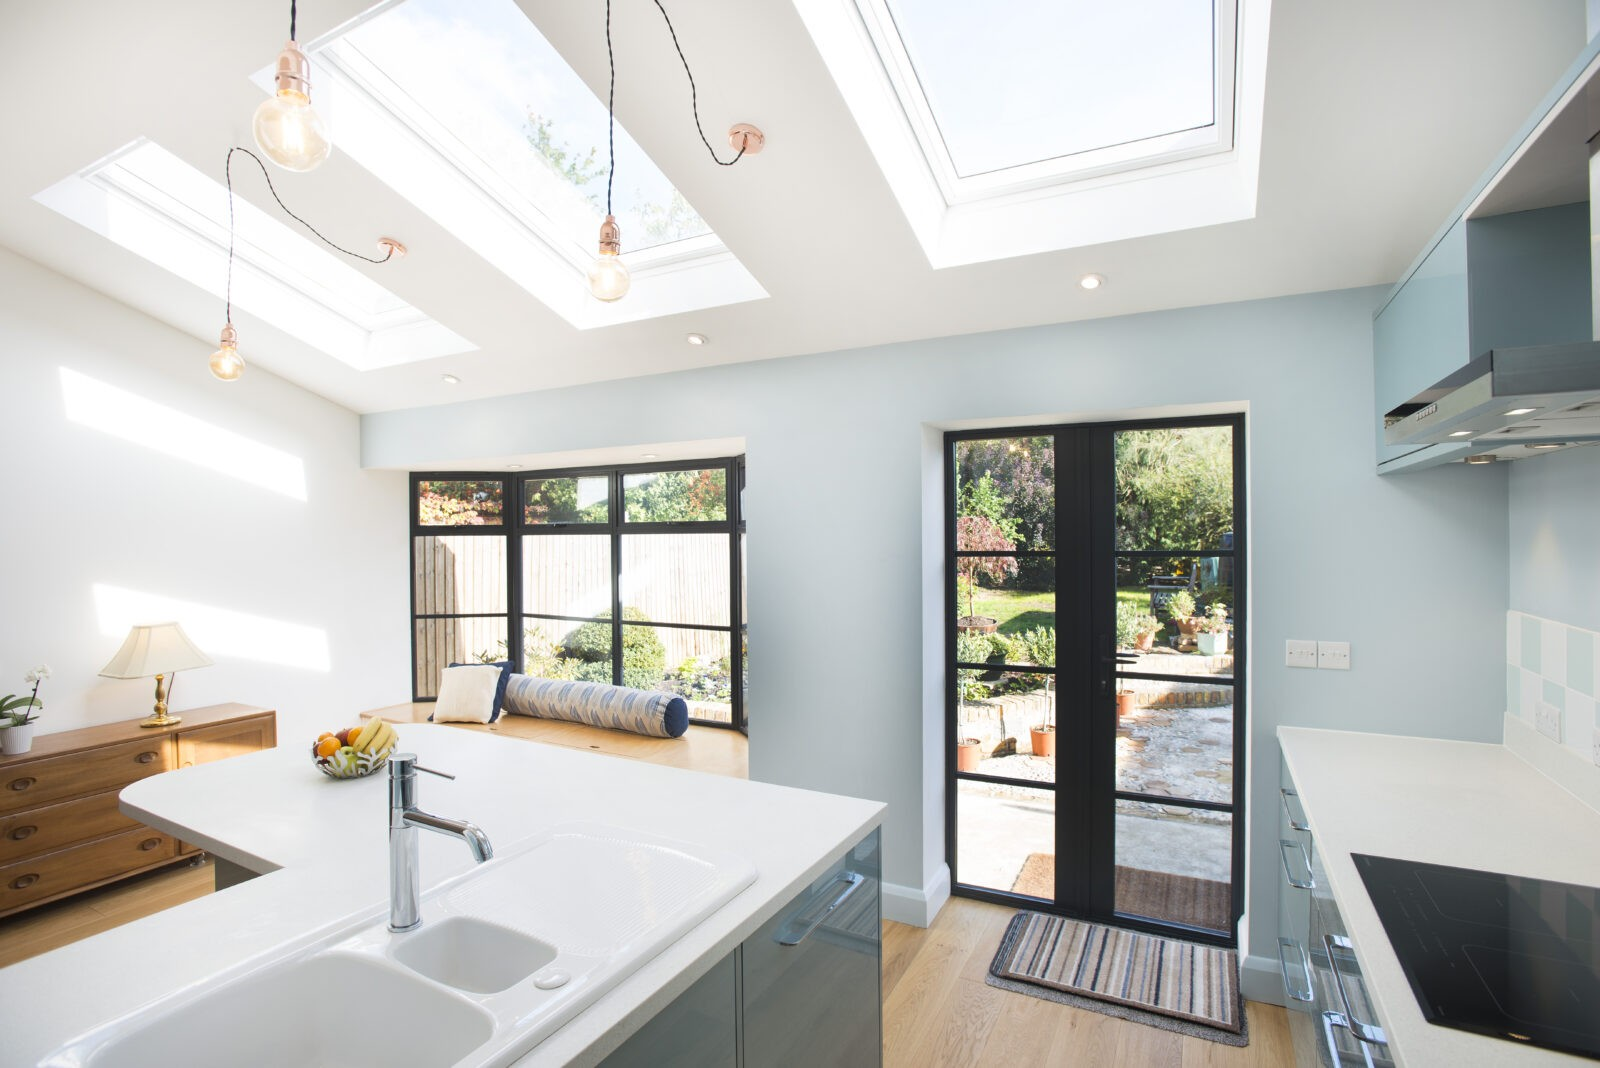 Flat Roof Vs Pitched Roof For Your Extension Build Team Blog